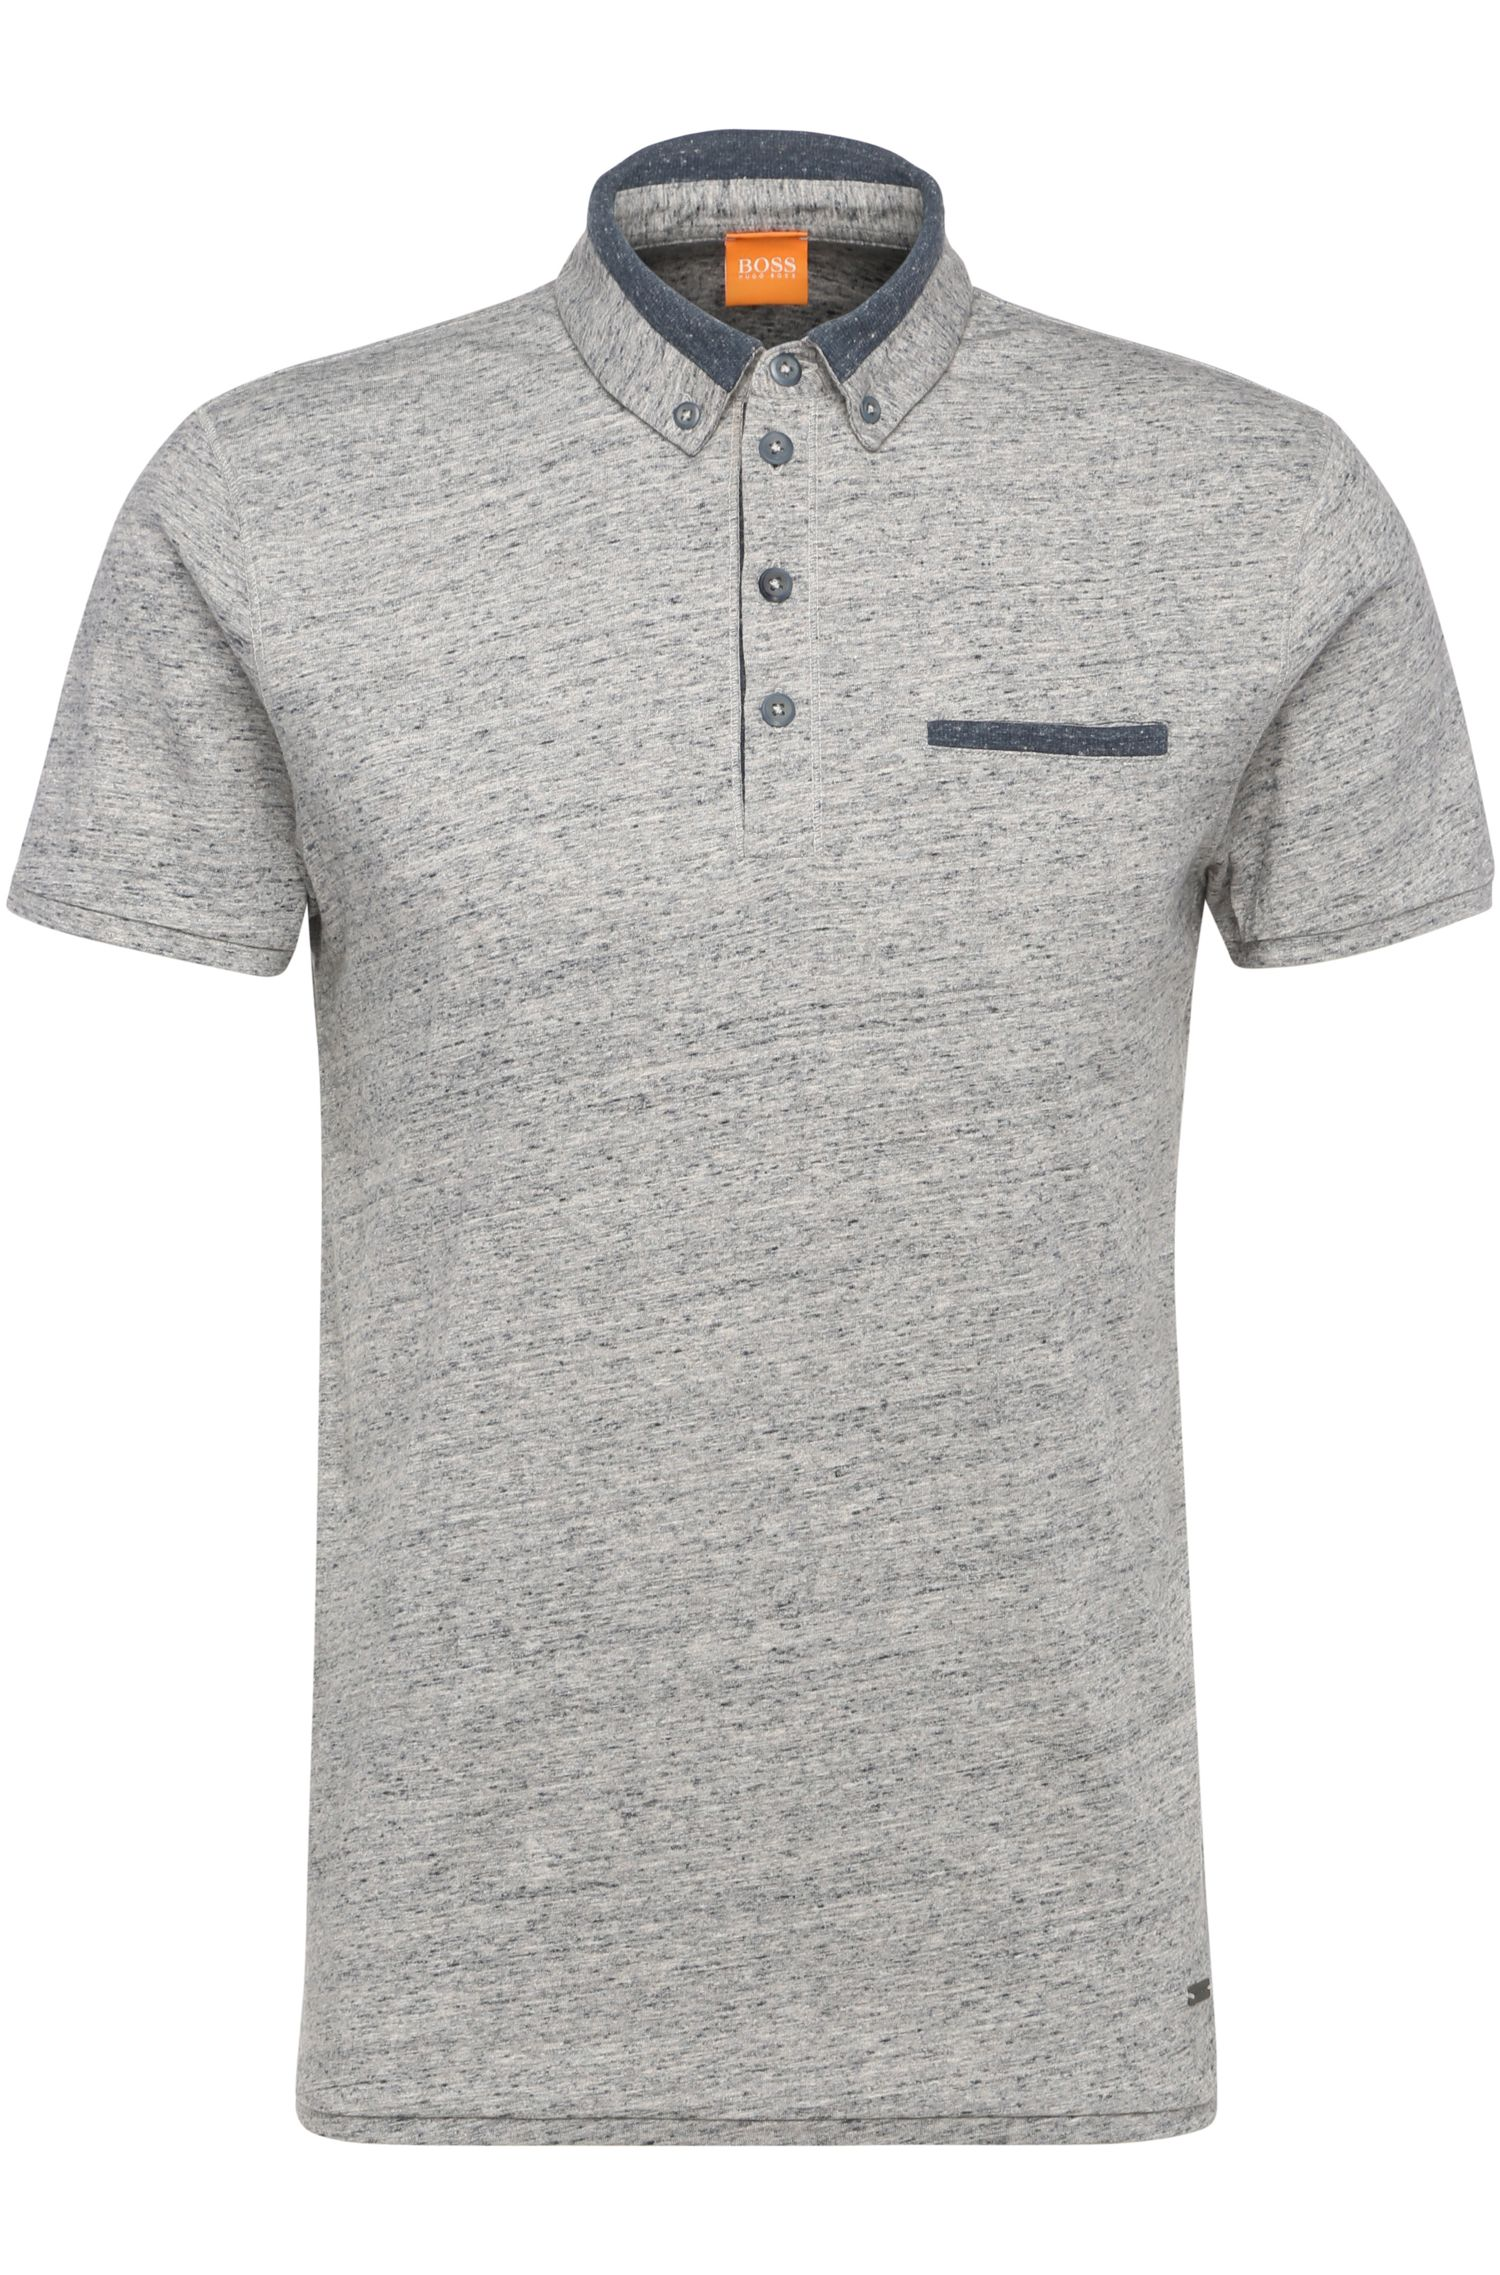 'Pyx' | Slim Fit, Cotton Melange Polo